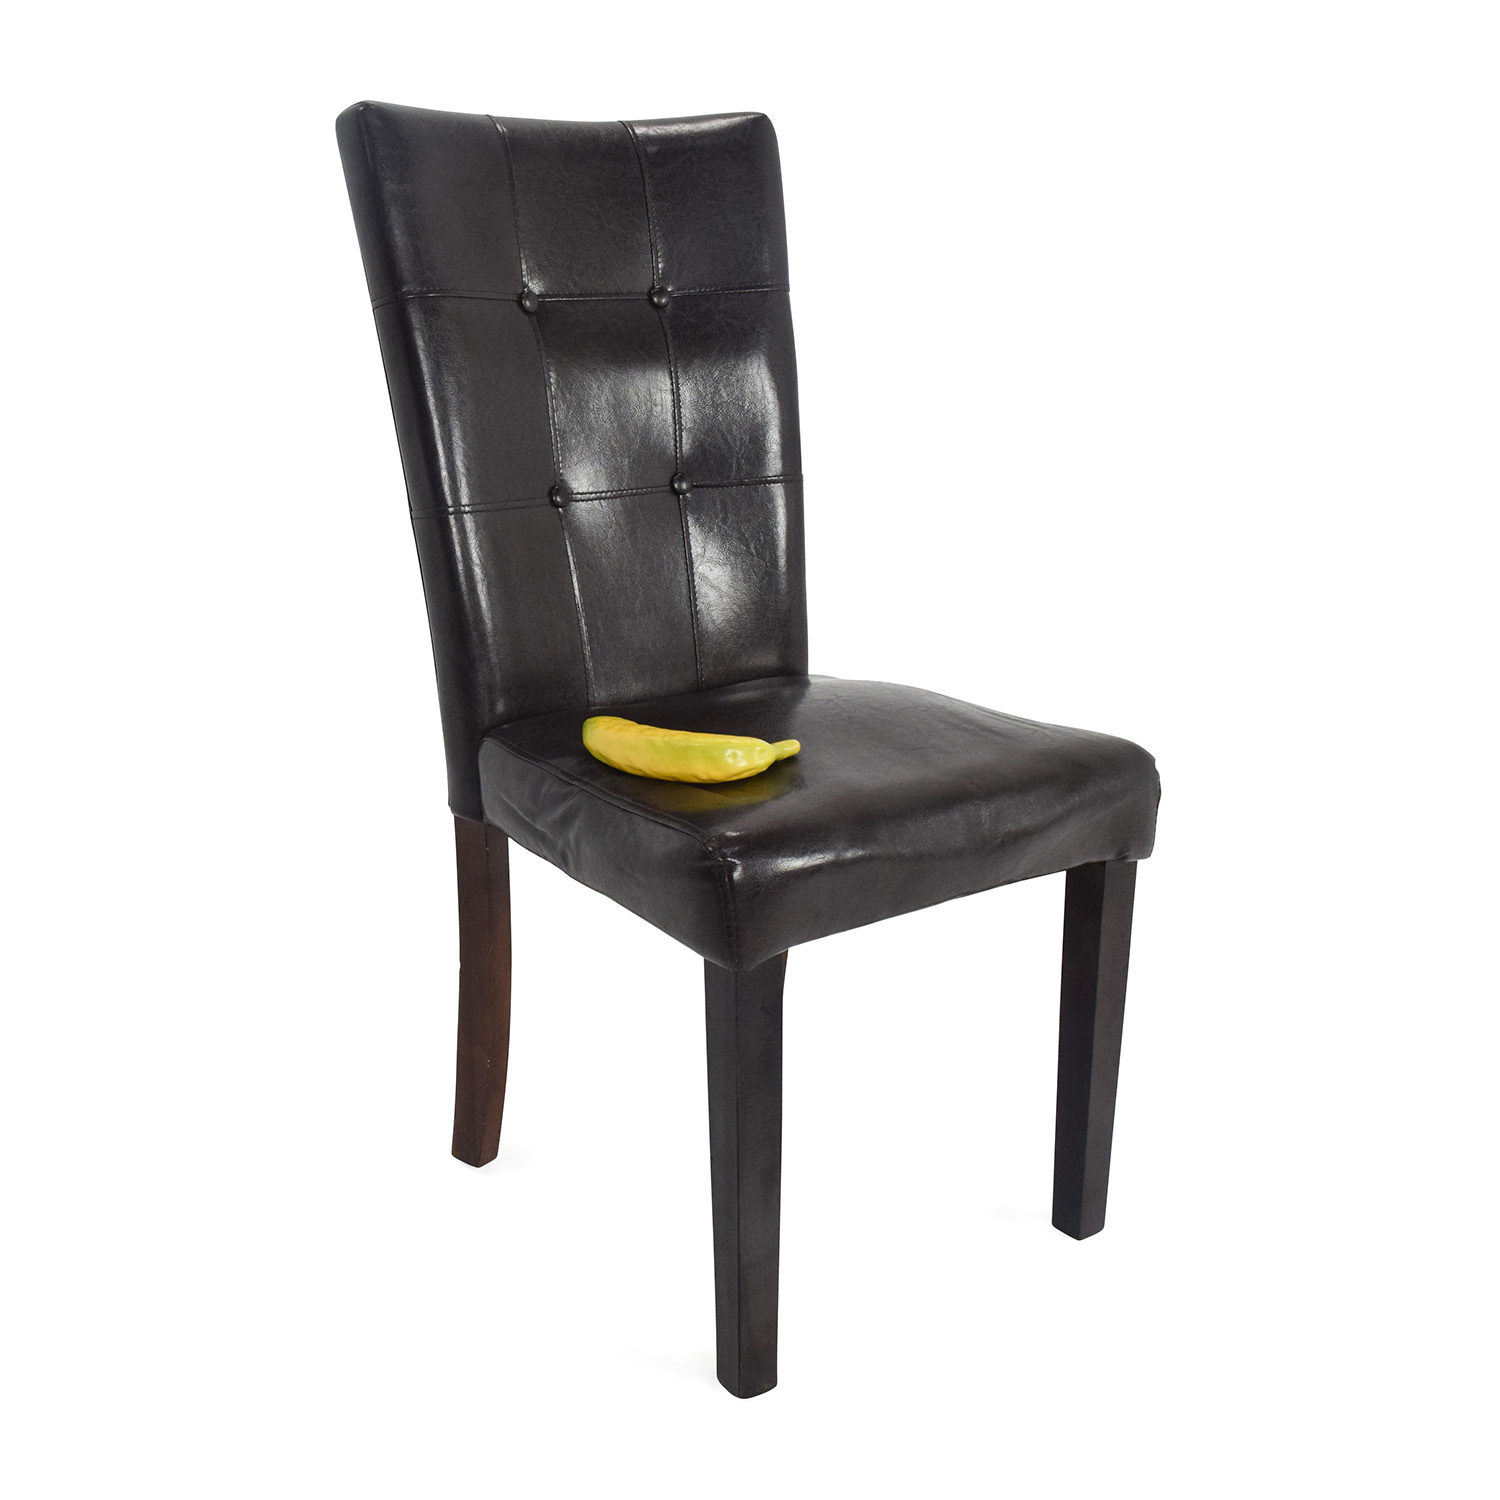 kirklands dining chairs black chair 49 off kirkland 39s leather accent